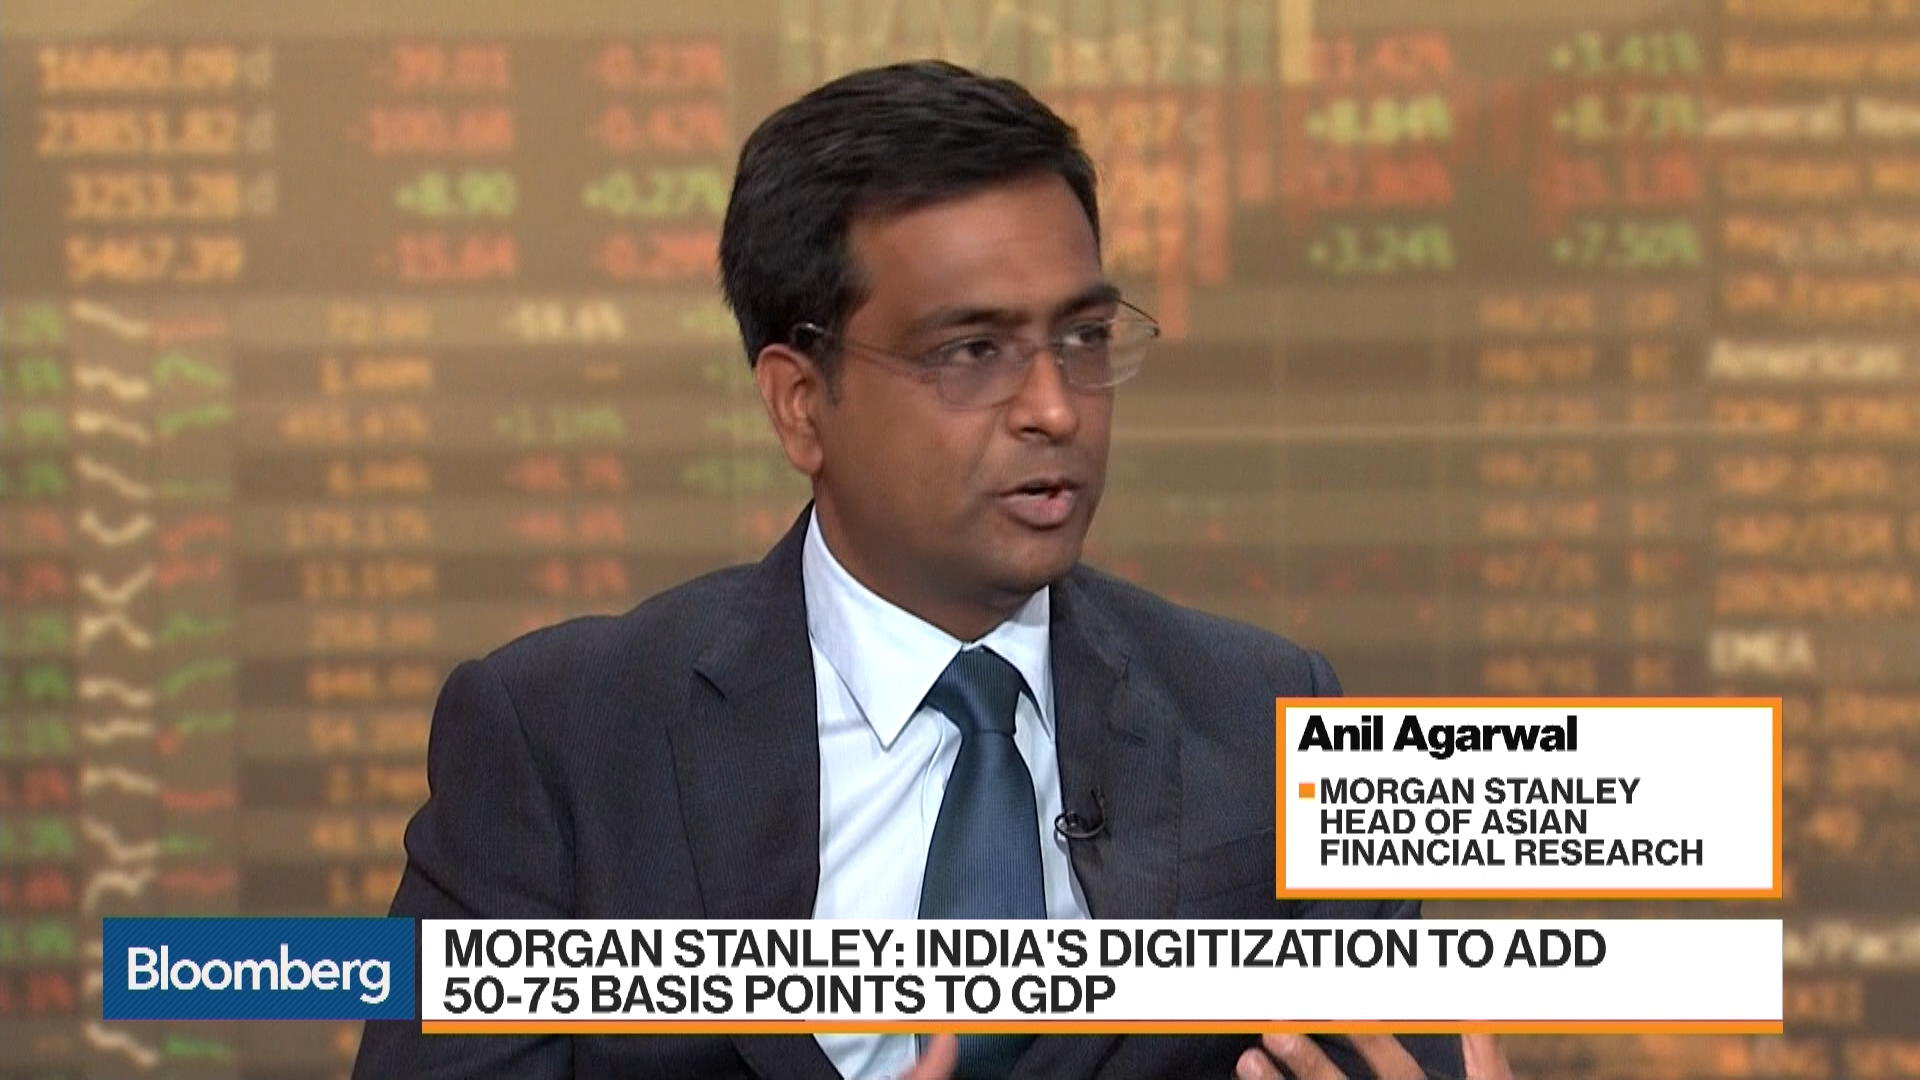 Morgan Stanley's Agarwal Sees India Opportunity